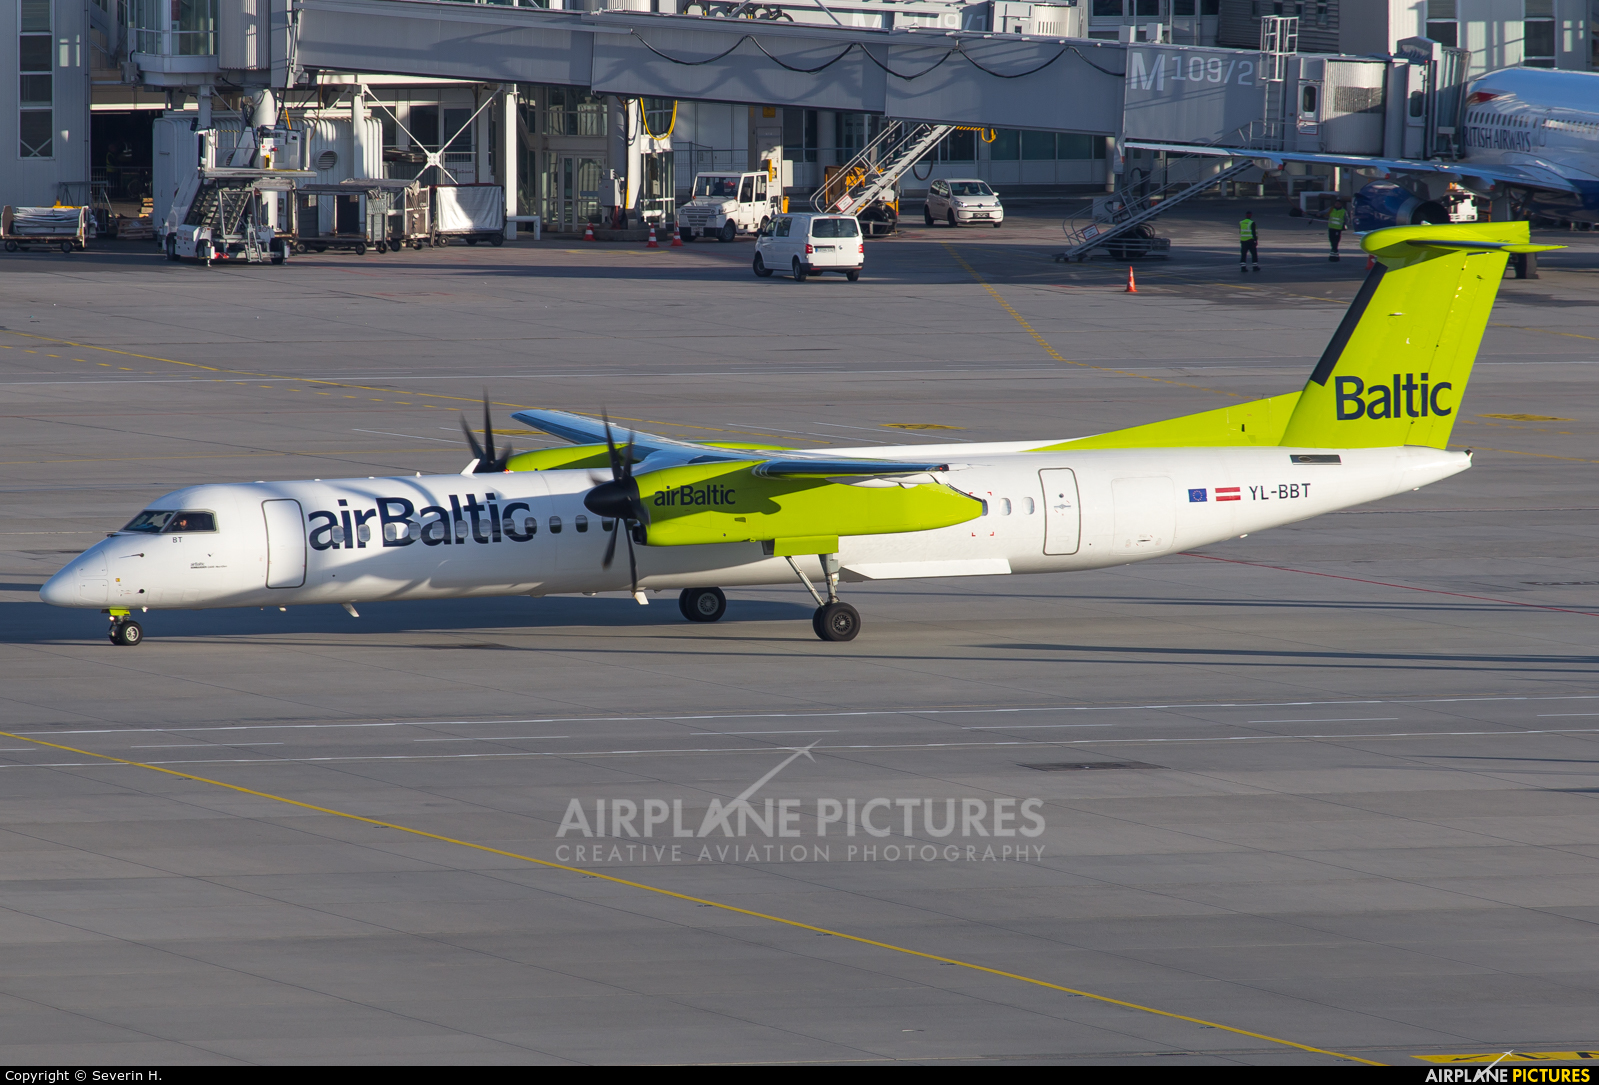 Air Baltic YL-BBT aircraft at Munich